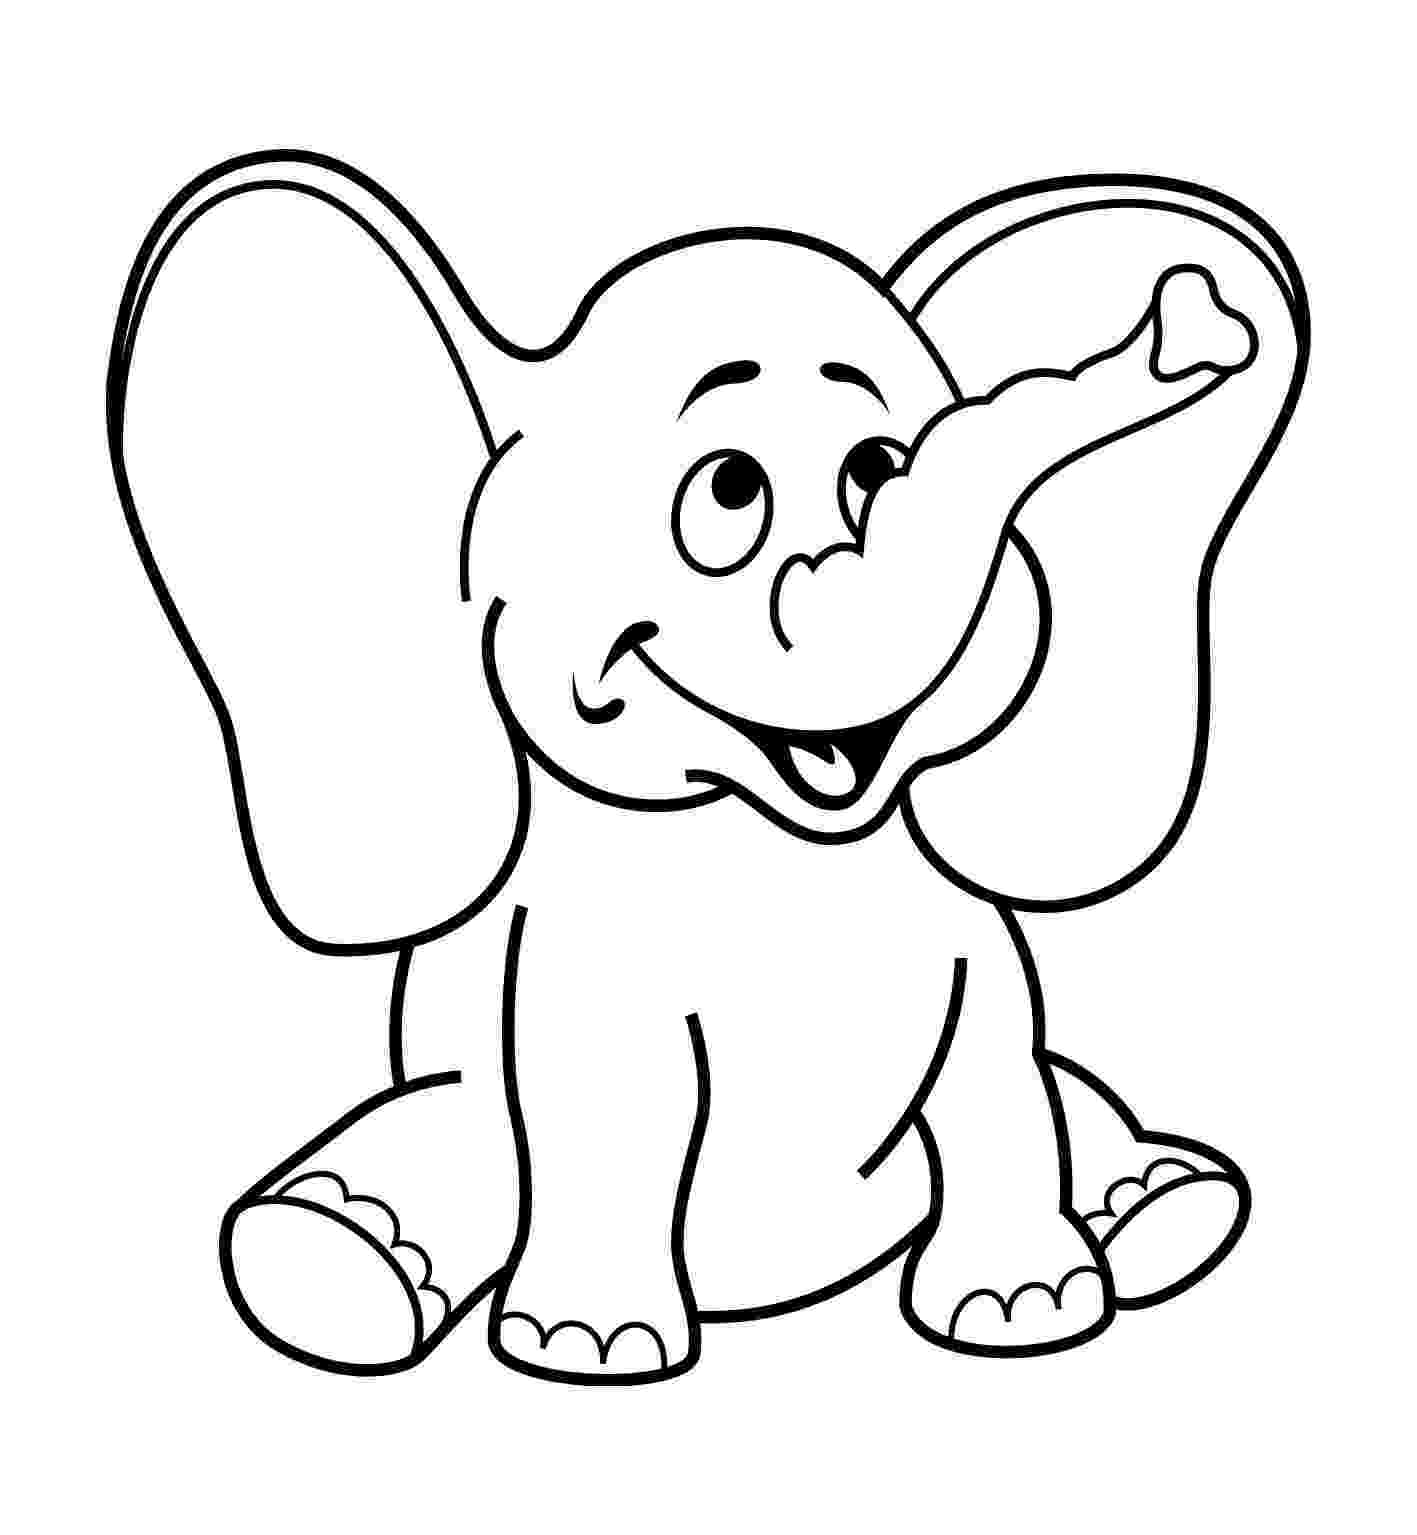 coloring pages for two year olds coloring pages for 2 to 3 year old kids download them or year two for pages coloring olds